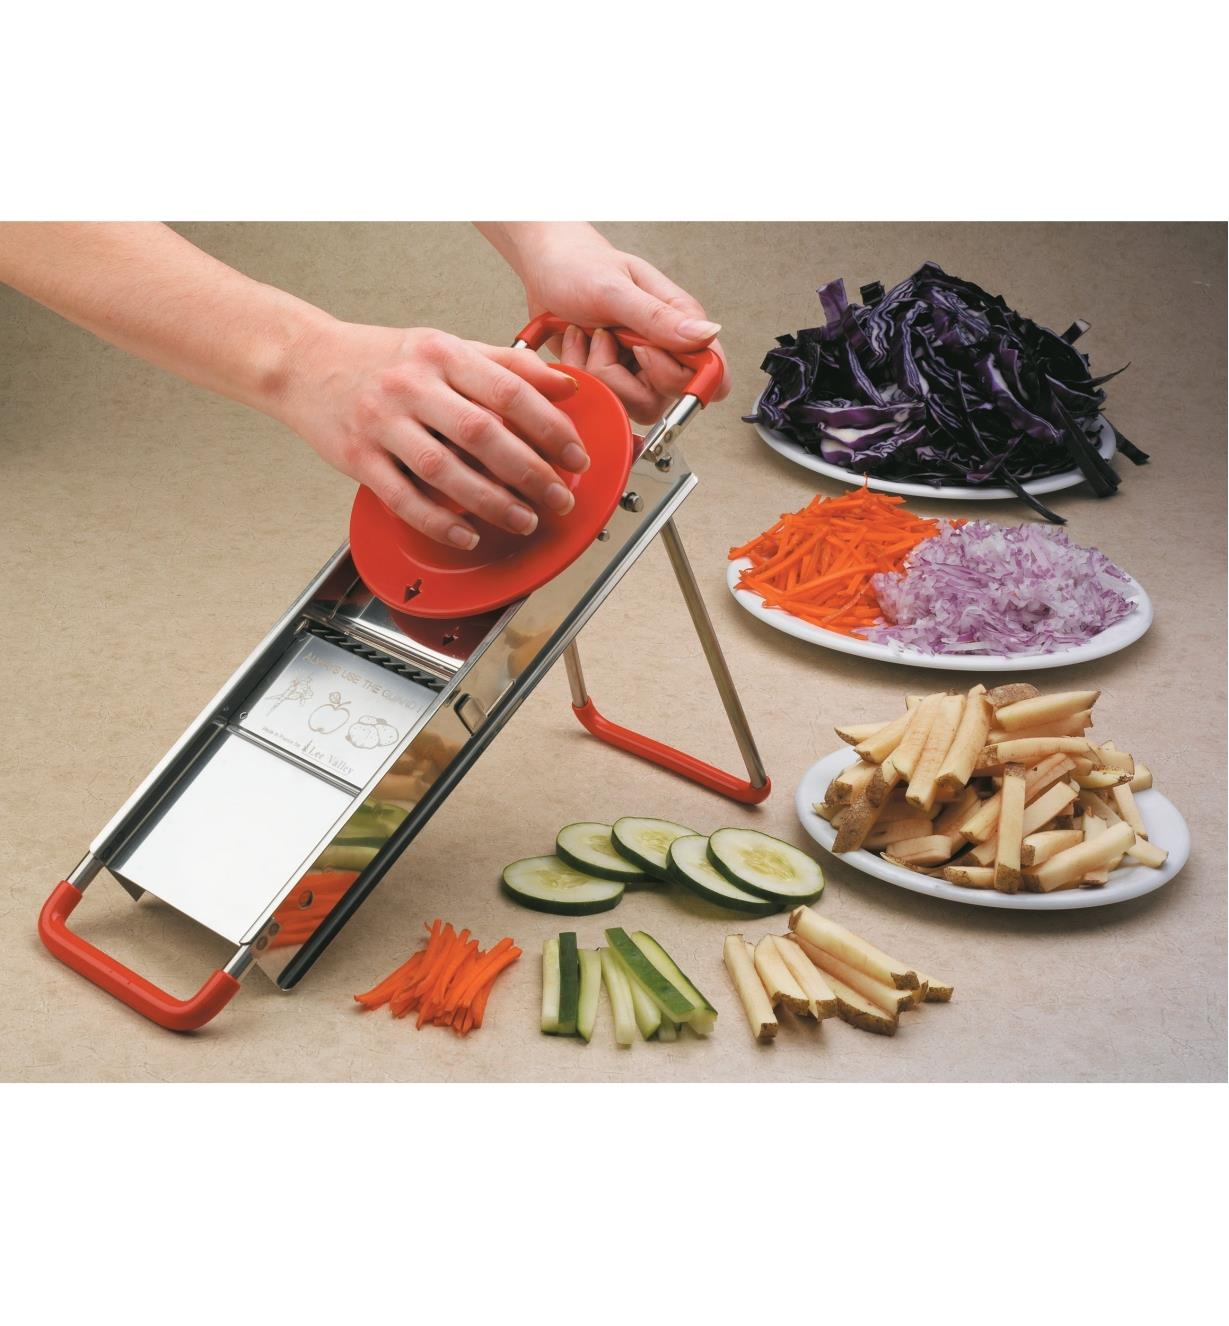 Slicing vegetables with the Classic French Mandoline, with plates of various sliced veggies nearby